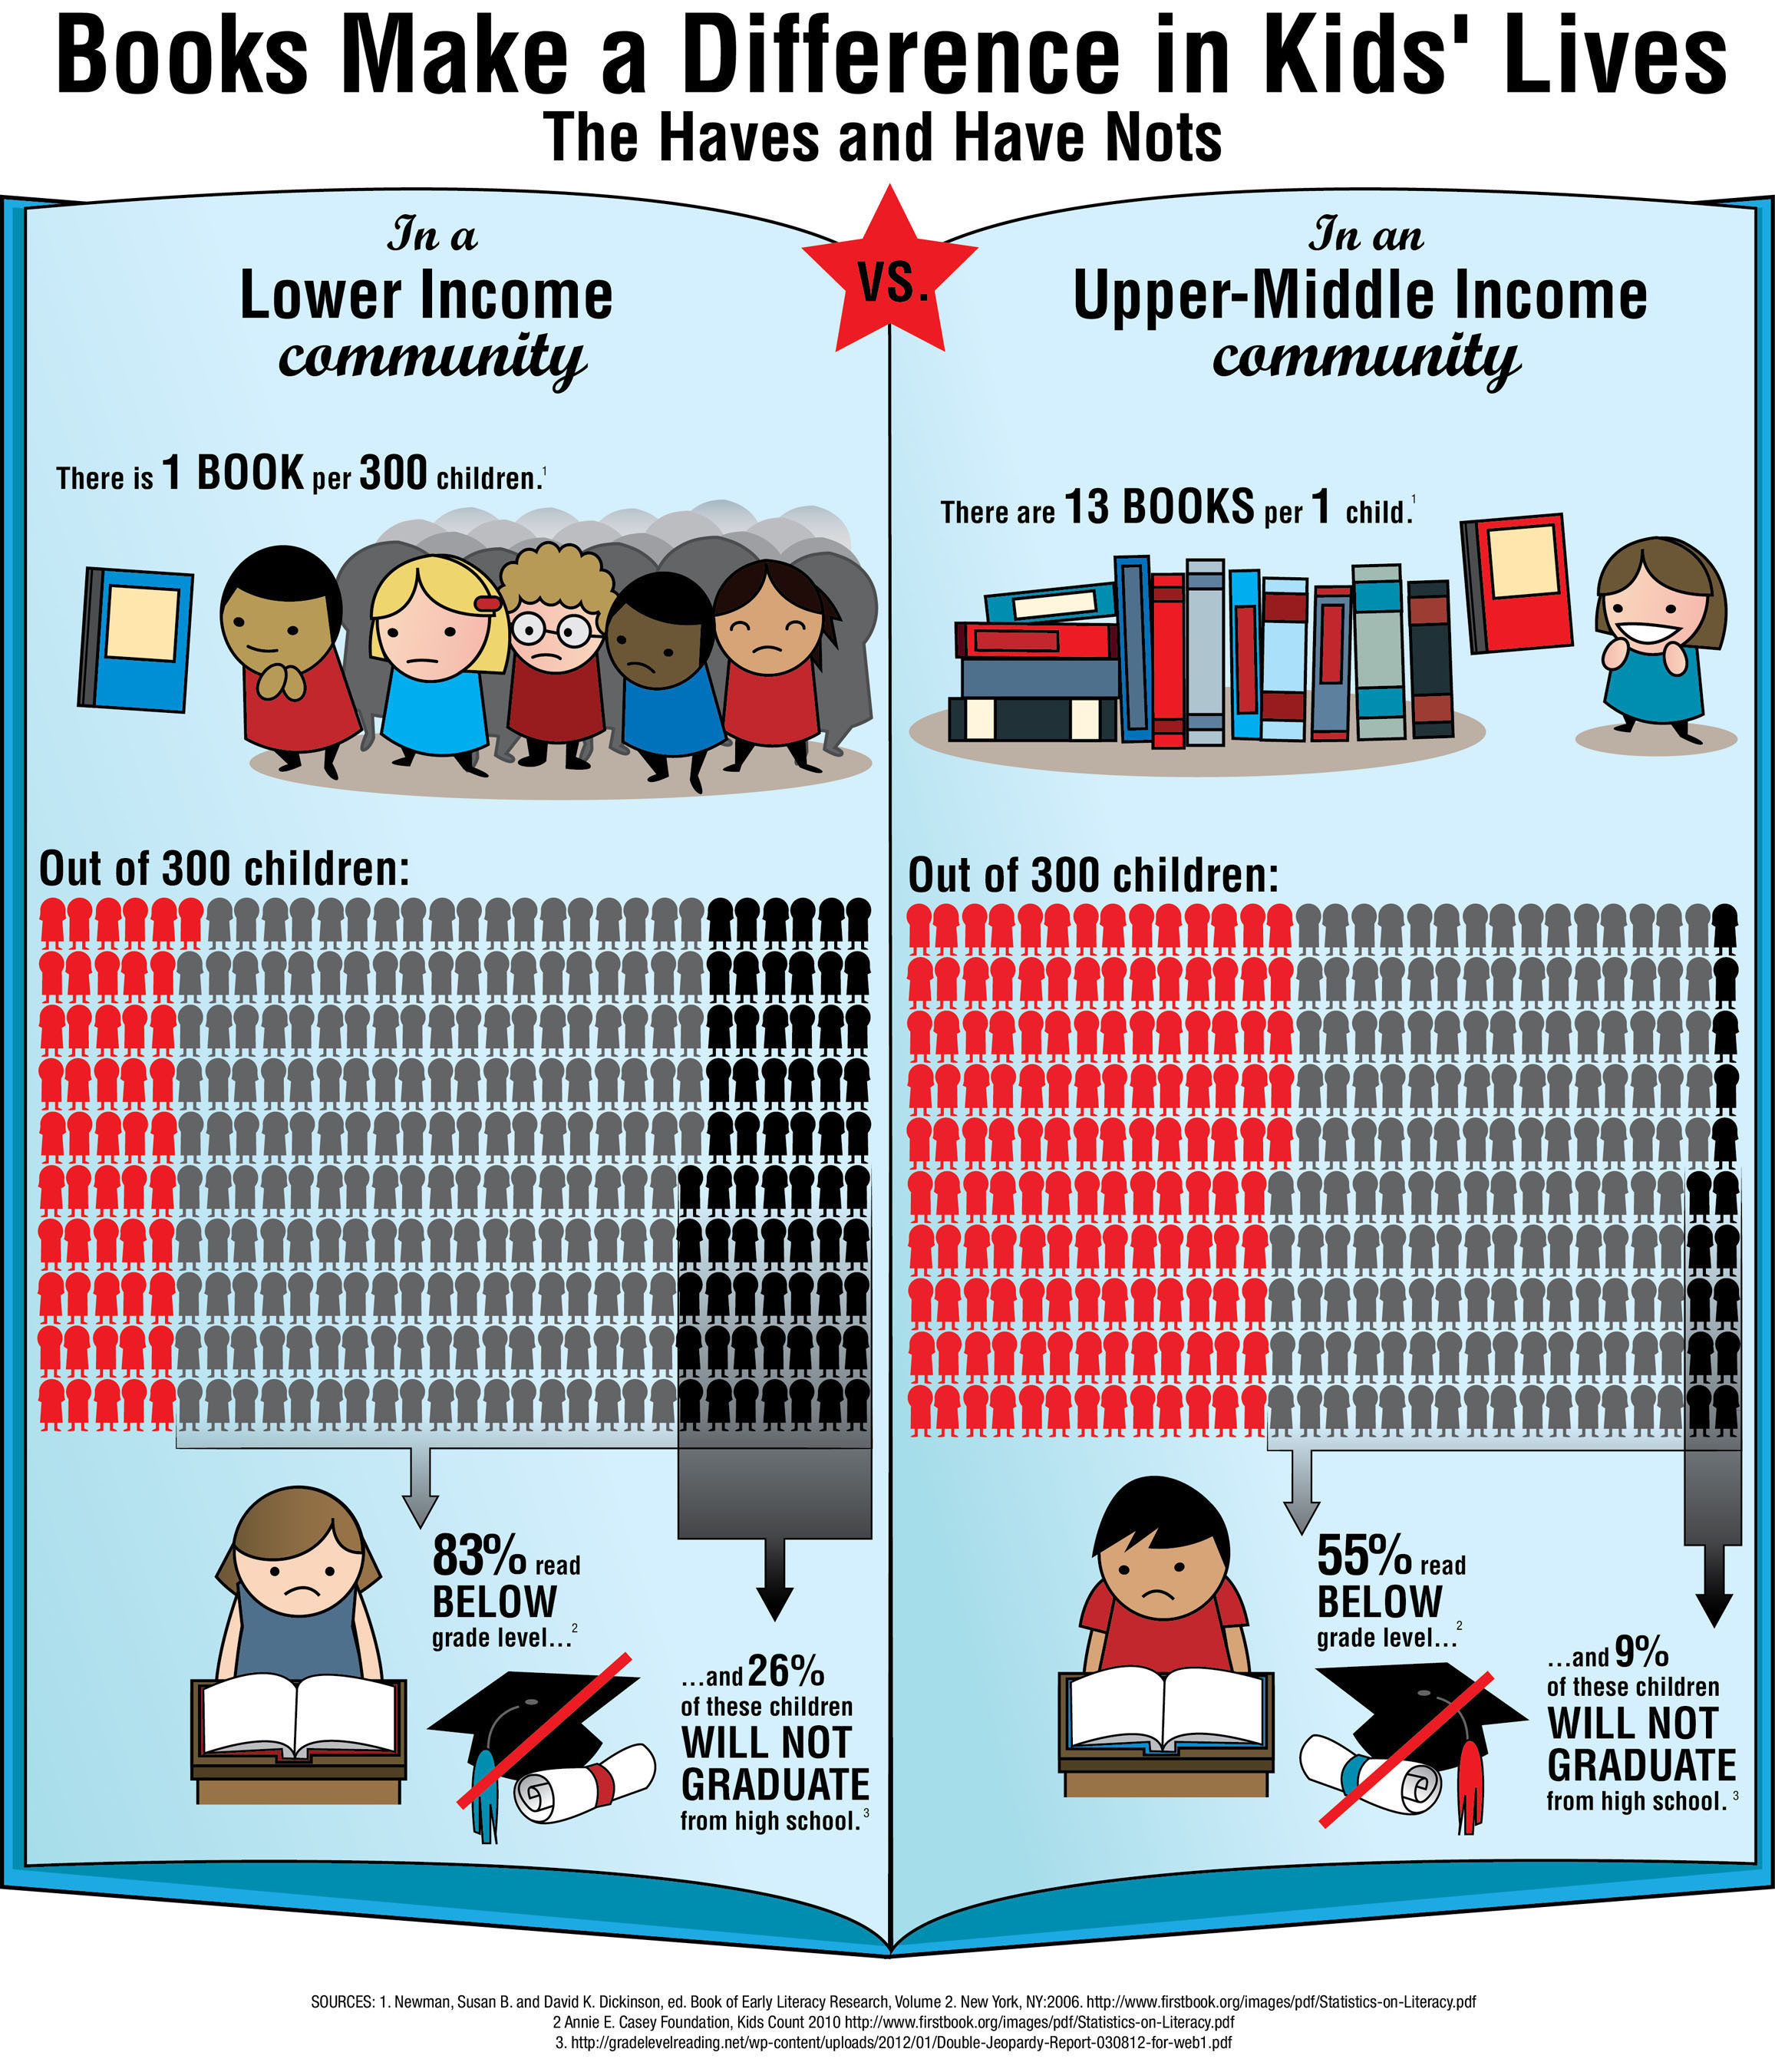 [INFOGRAPHIC] The Haves and the Have Nots: How Books Make a Difference in Children's Lives.  ...